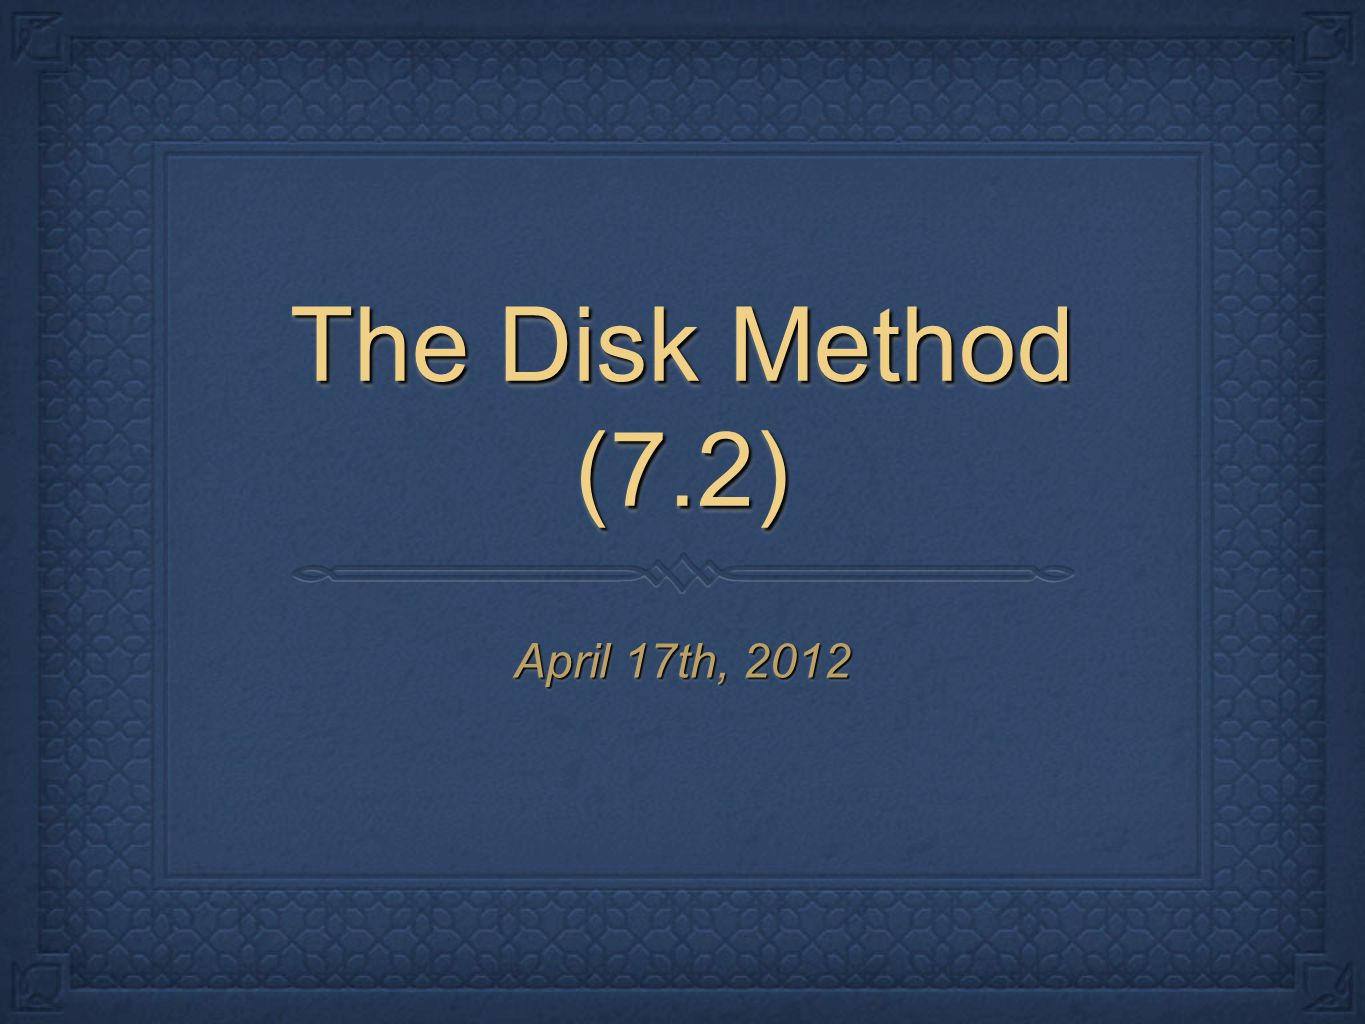 The Disk Method (7.2) April 17th, 2012